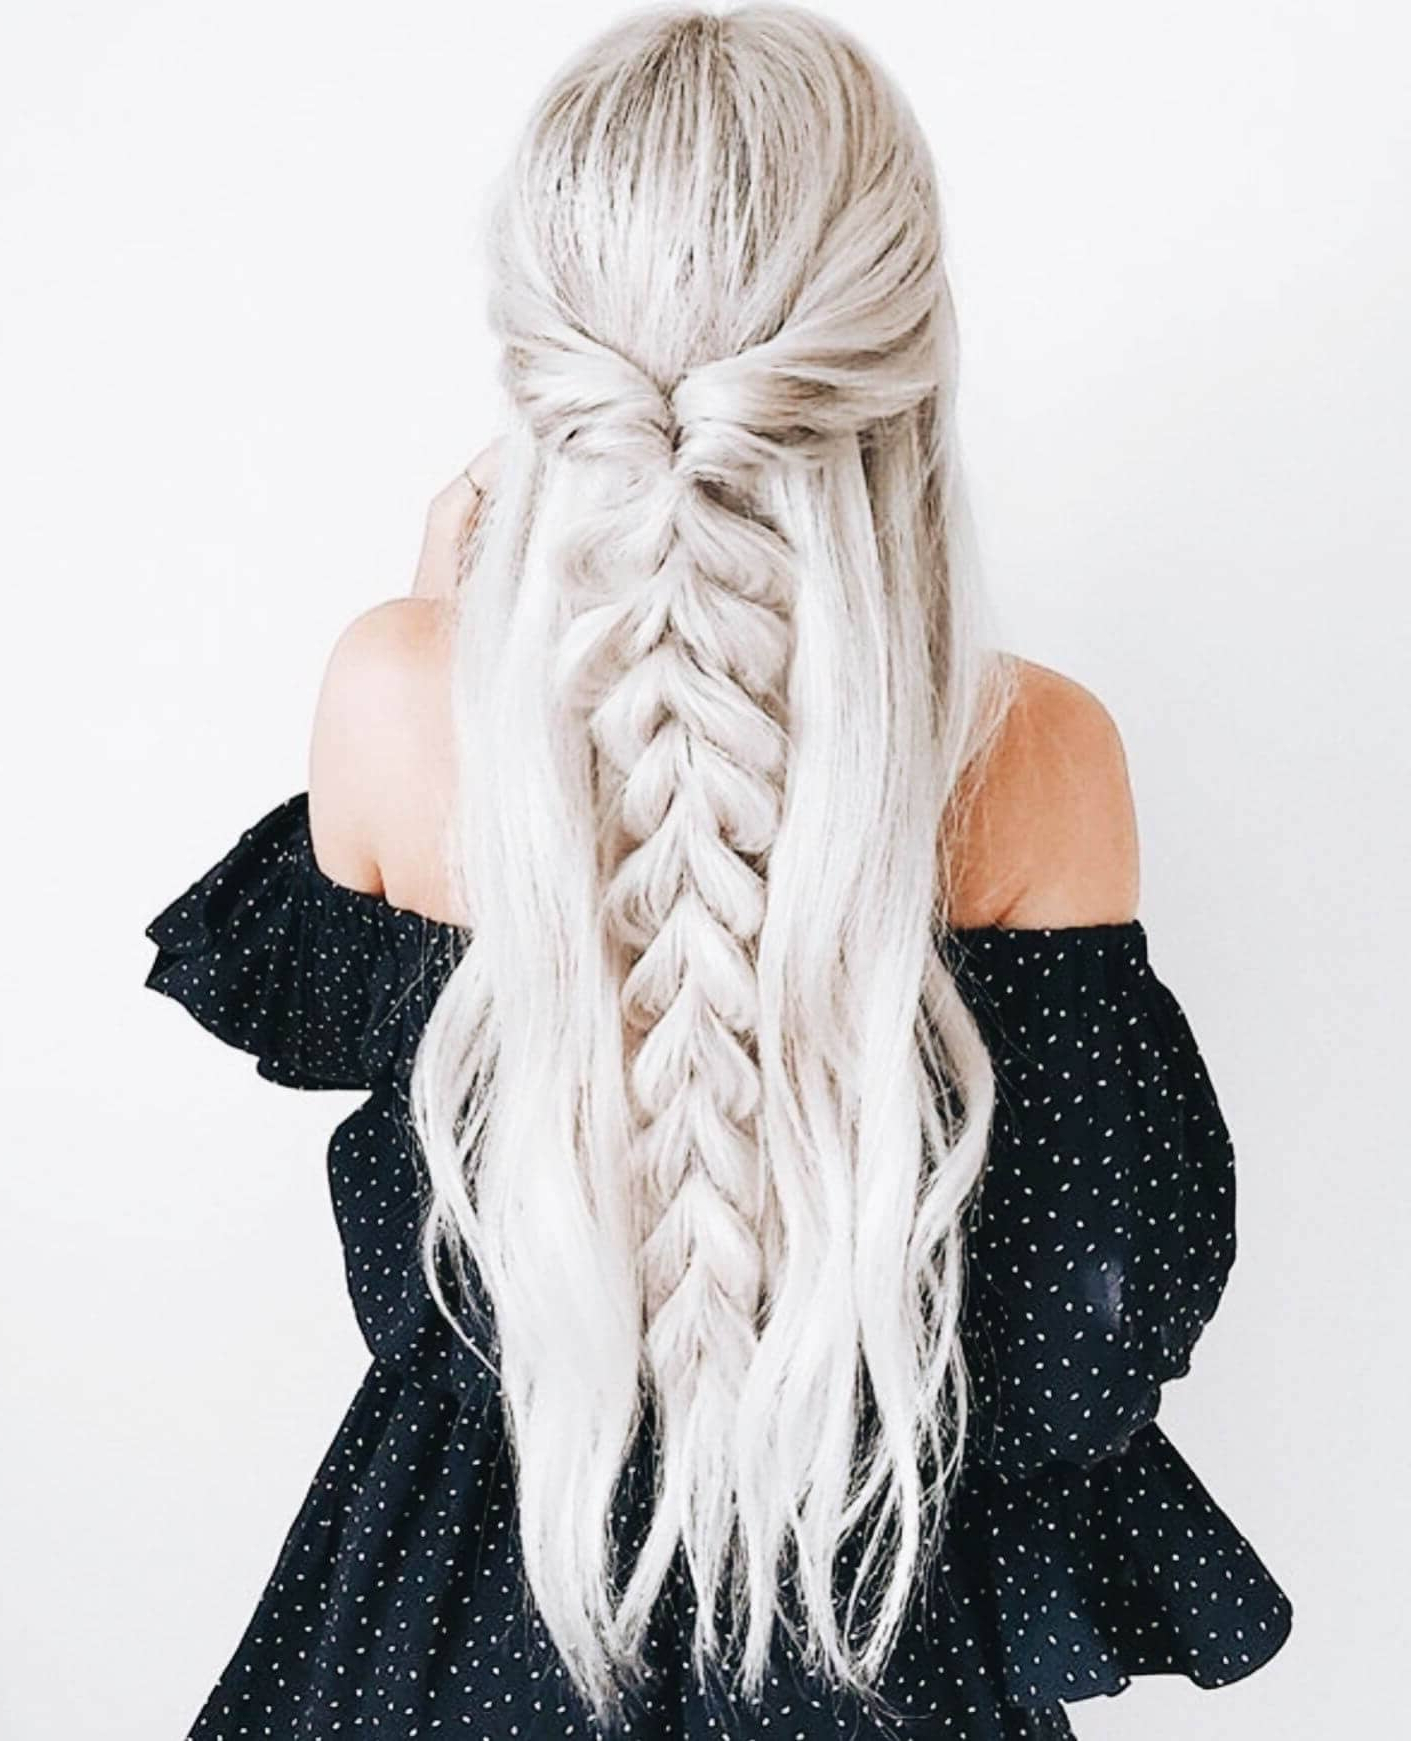 50 Unforgettable Ash Blonde Hairstyles To Inspire You Regarding Most Recent Long Blonde Braid Hairstyles (View 13 of 20)